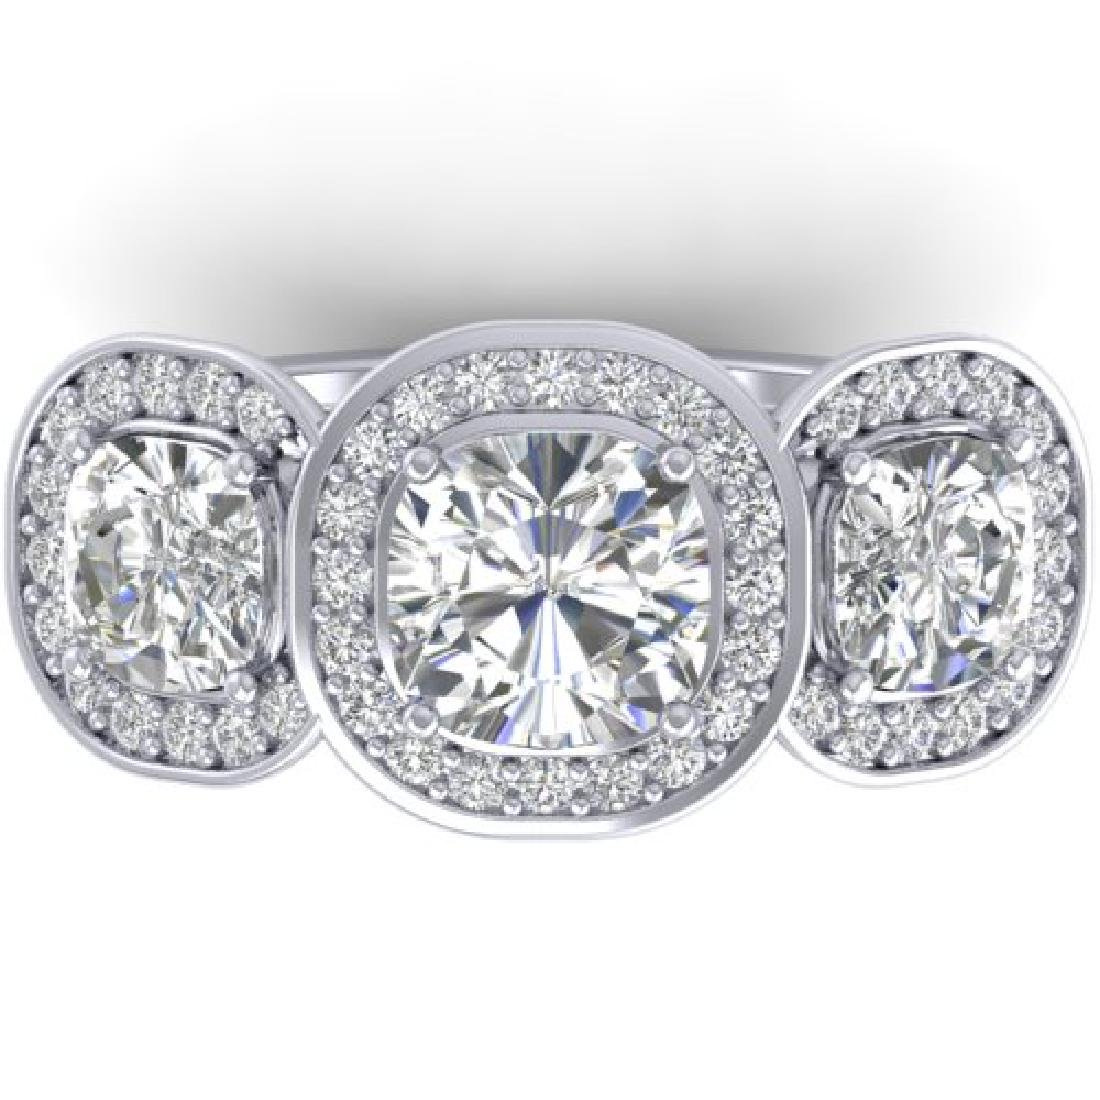 2.7 CTW Cushion Cut Certified VS/SI Diamond Art Deco 3